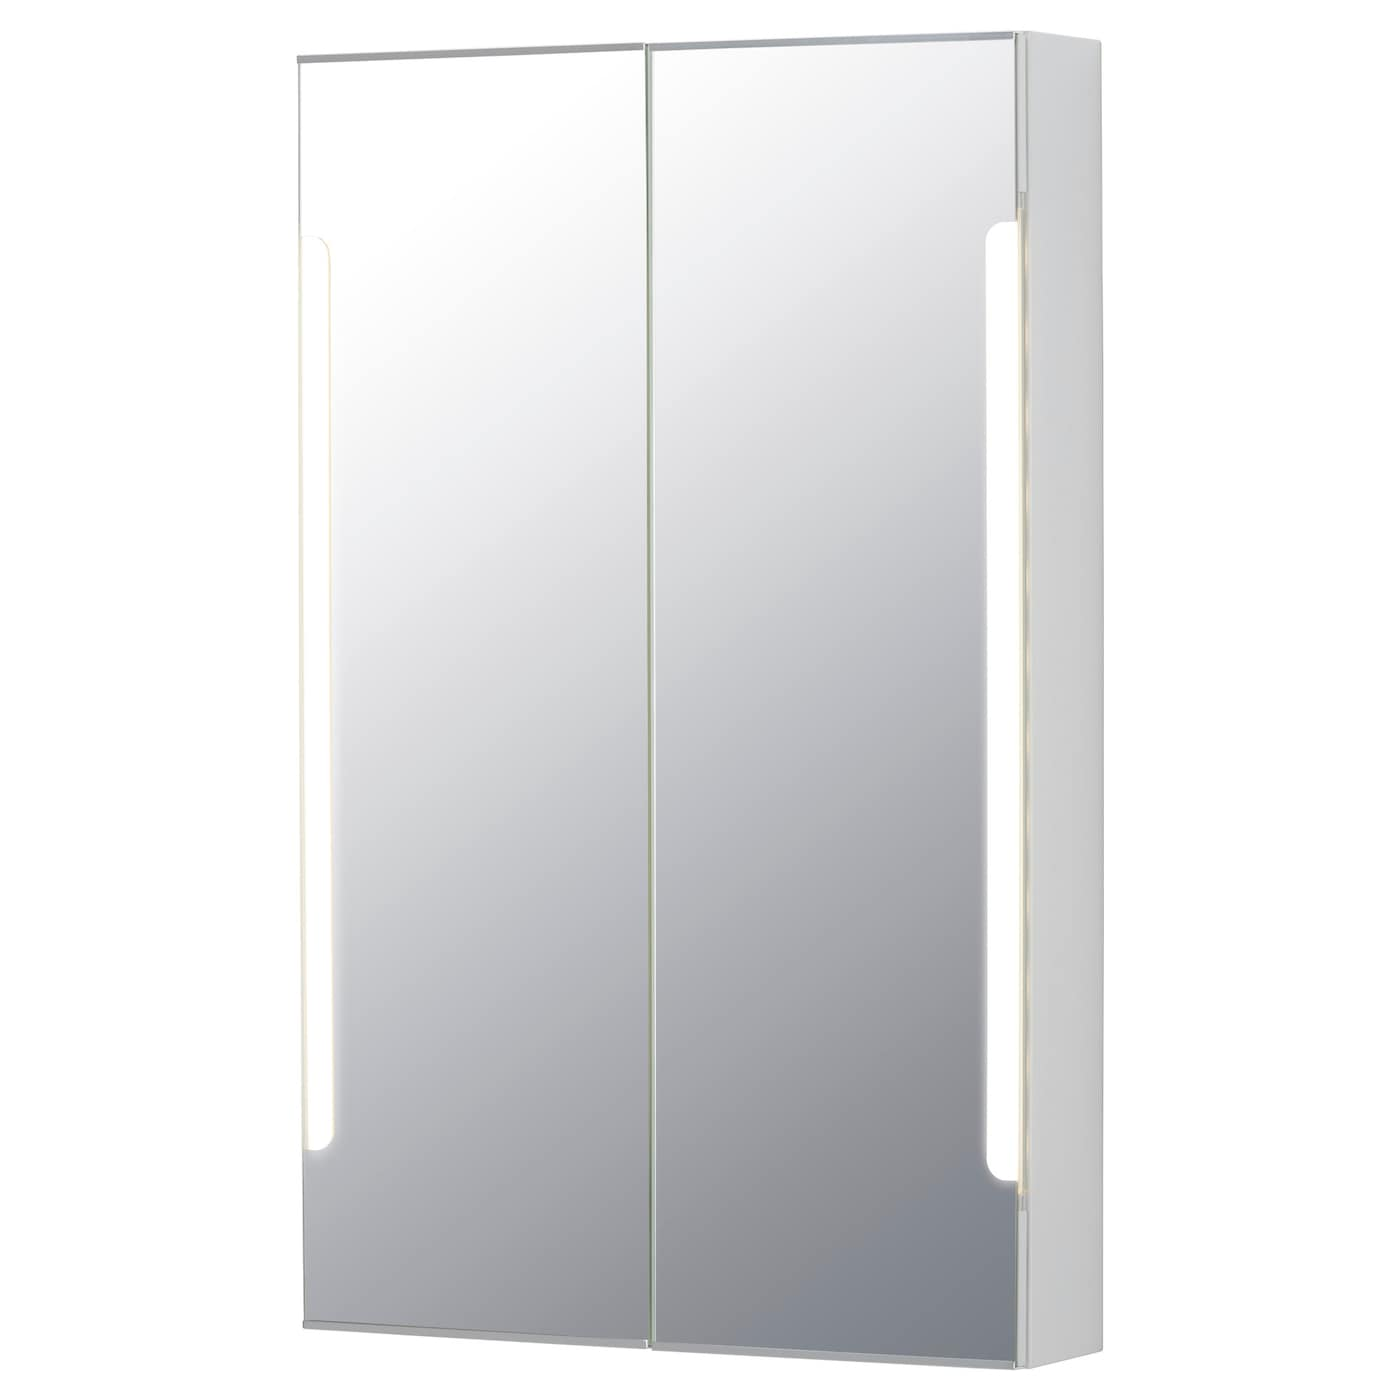 IKEA STORJORM mirror cab 2 door/built-in lighting